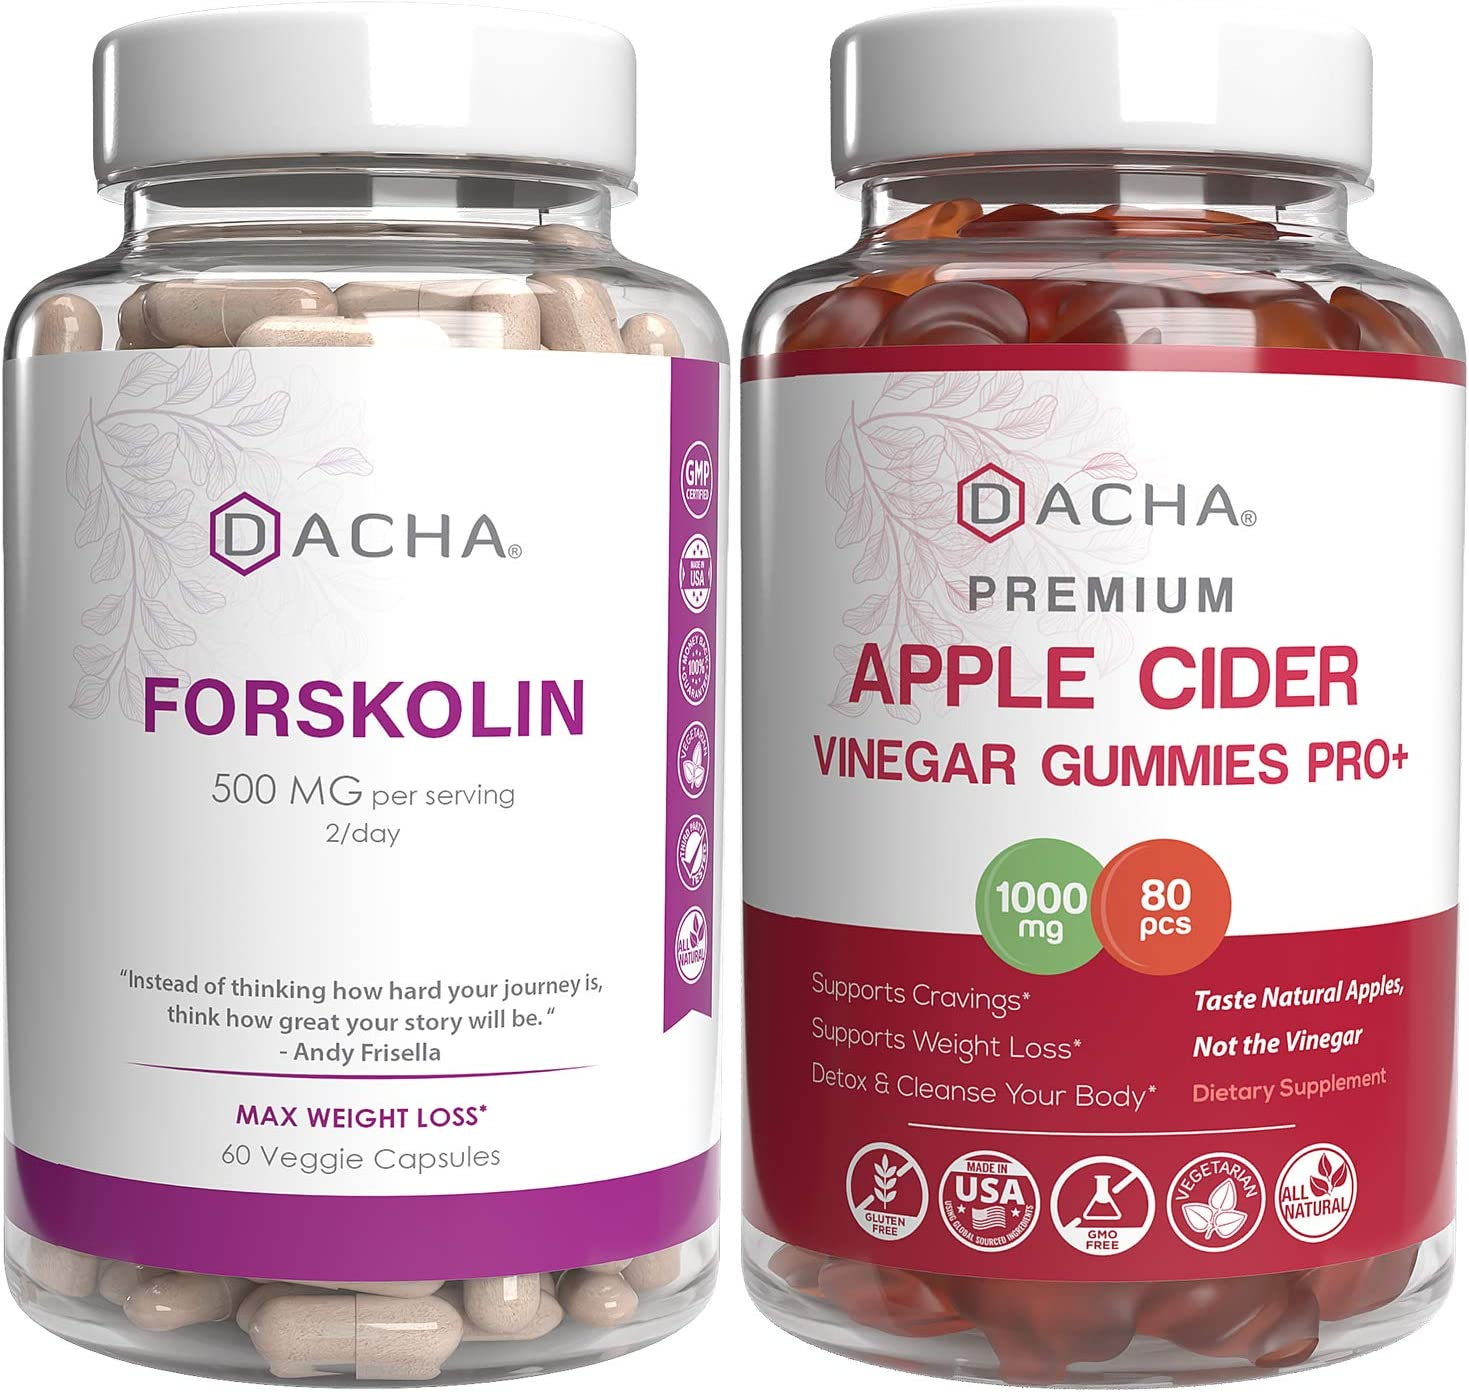 Forskolin & Apple Cider Vinegar Gummies Bundle – Antioxidant Packed For Ultra Strength Weight Loss, Immune Support, Detox Natural Herbs For Slim Look, Organic ACV With Mother, Lose Weight Fast Capsule